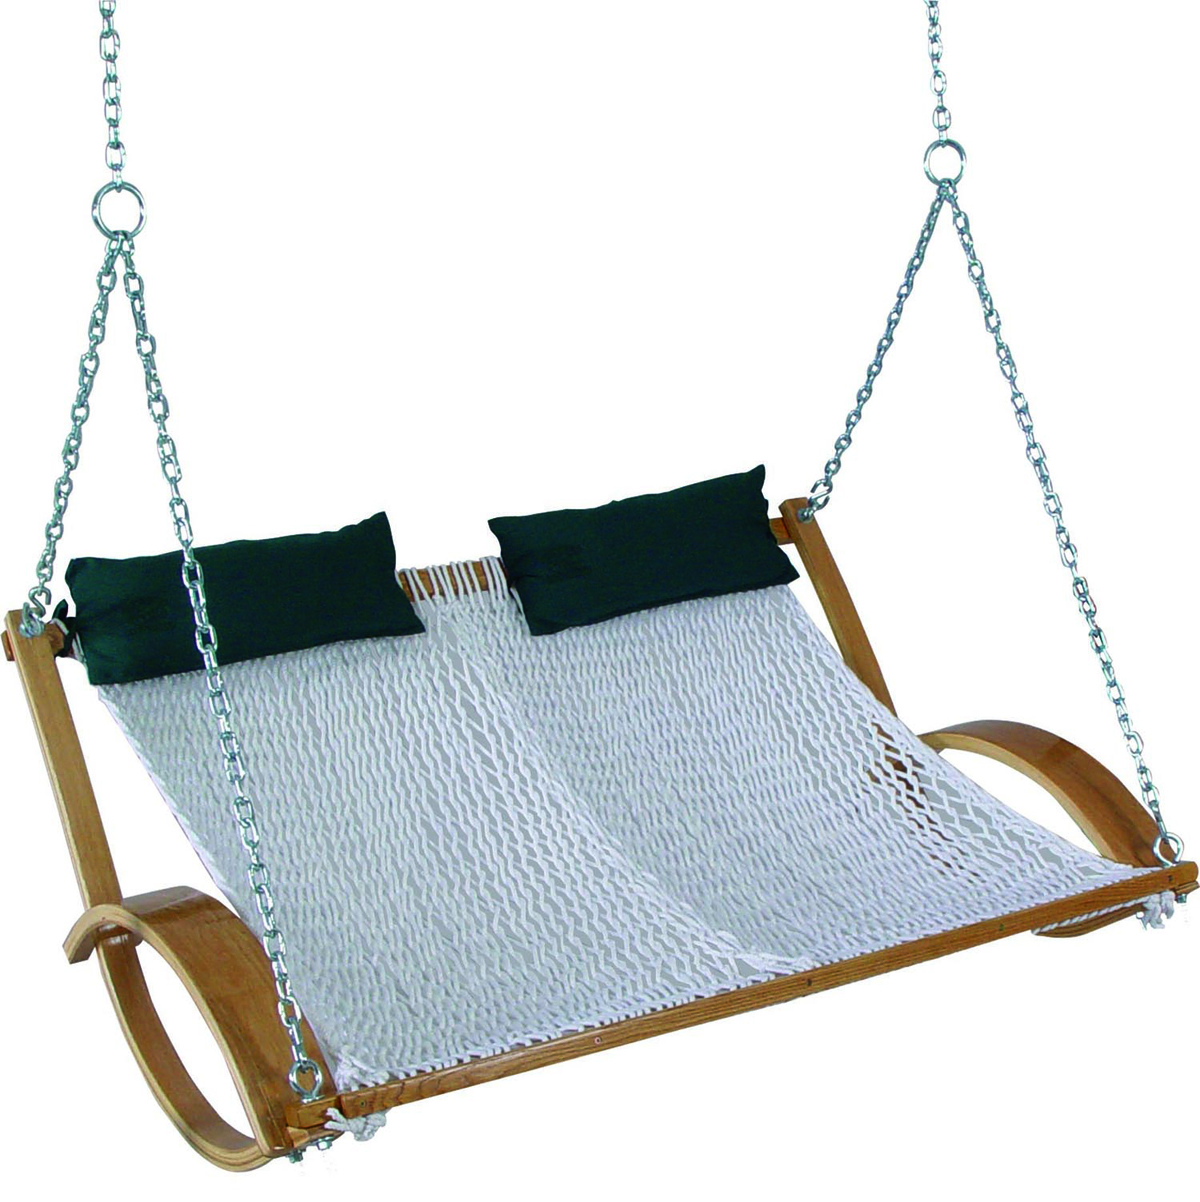 Pawleys Island Hammocks Double Polyester Rope Swing, Green Steel Stand